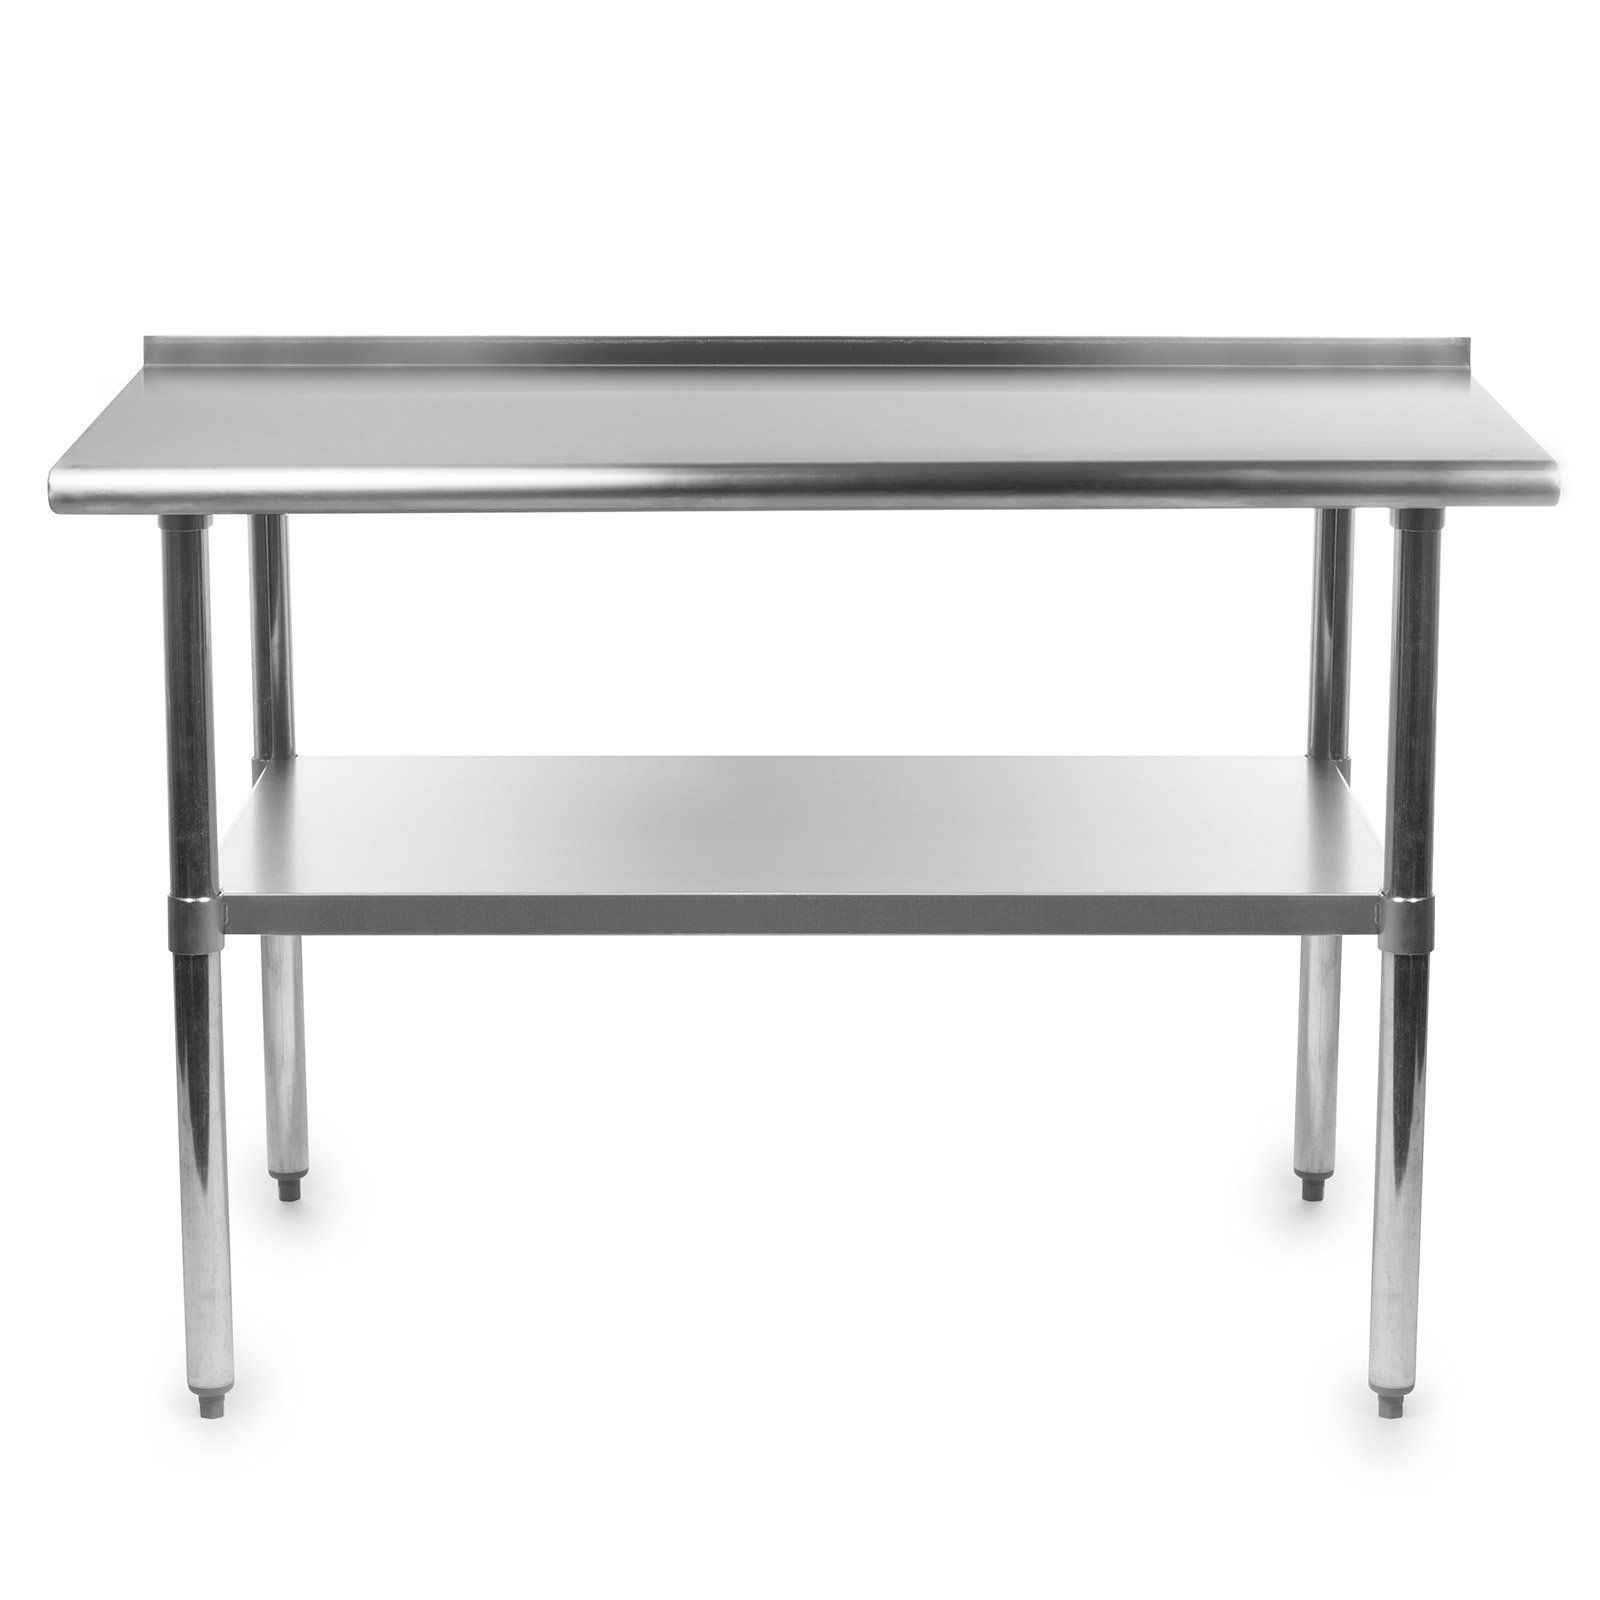 GRIDMANN NSF Stainless Steel Commercial Kitchen Prep & Work Table w/Backsplash - 72 in. x 24 in. by GRIDMANN (Image #2)